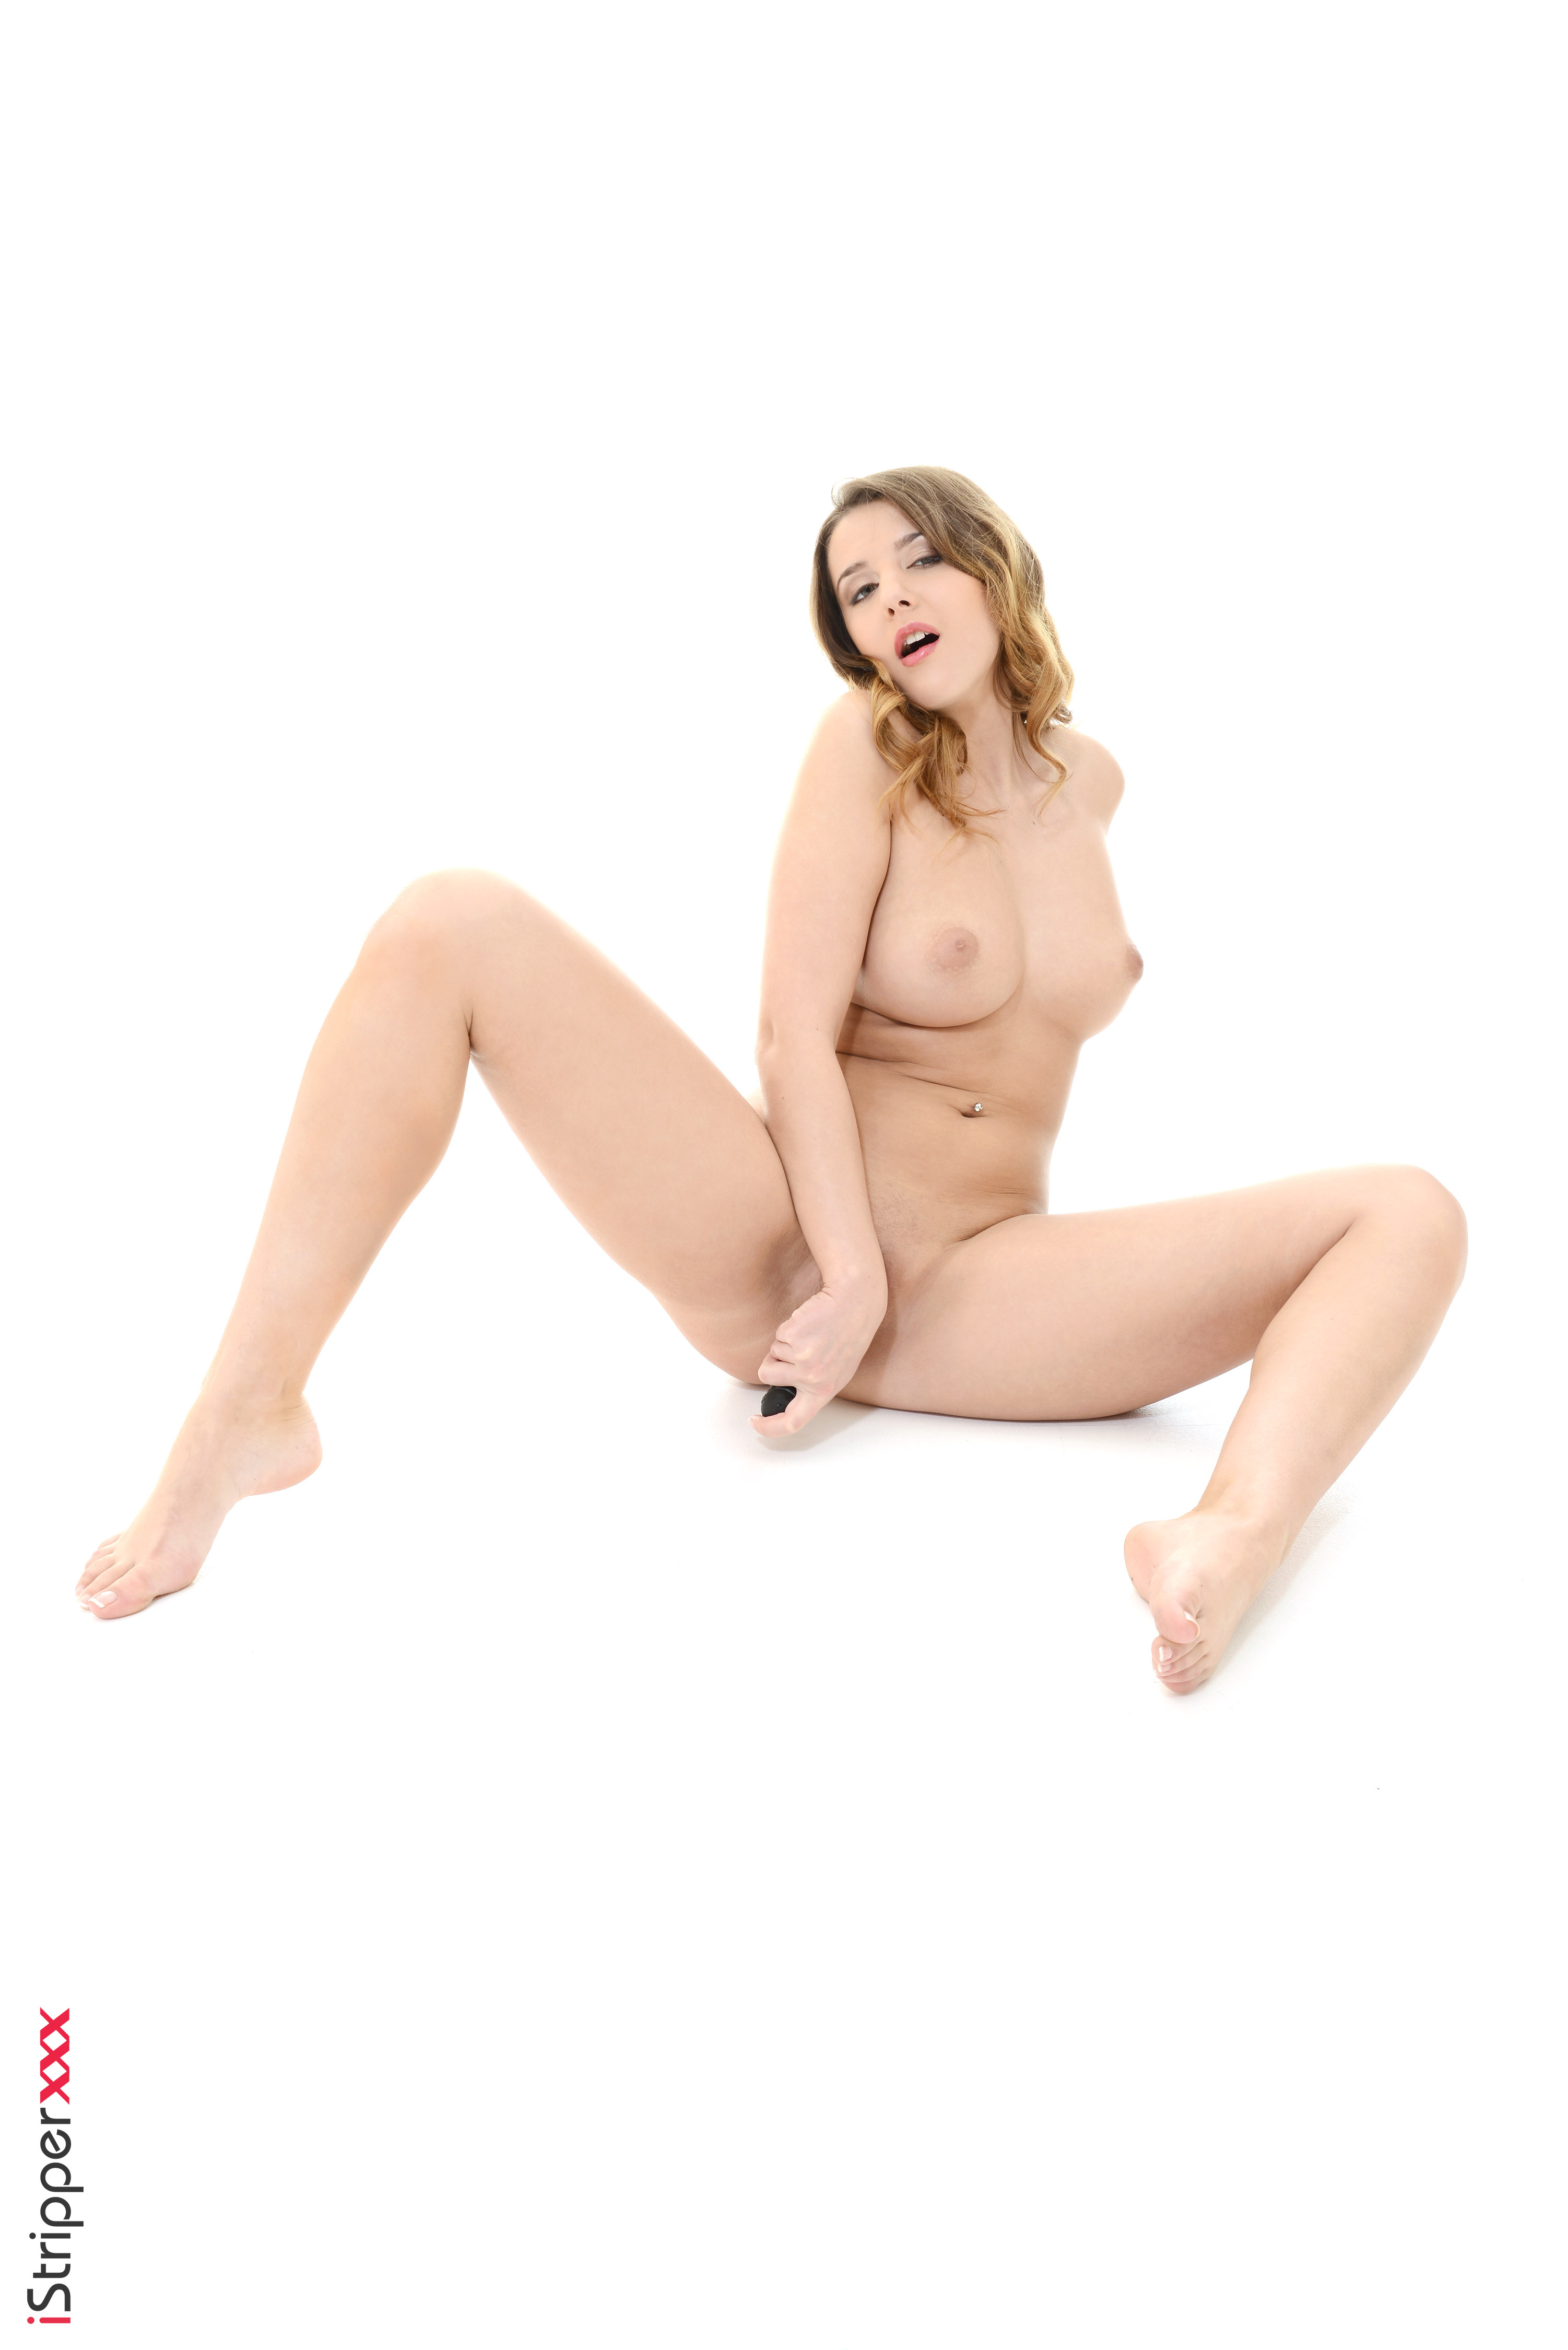 naked women backgrounds